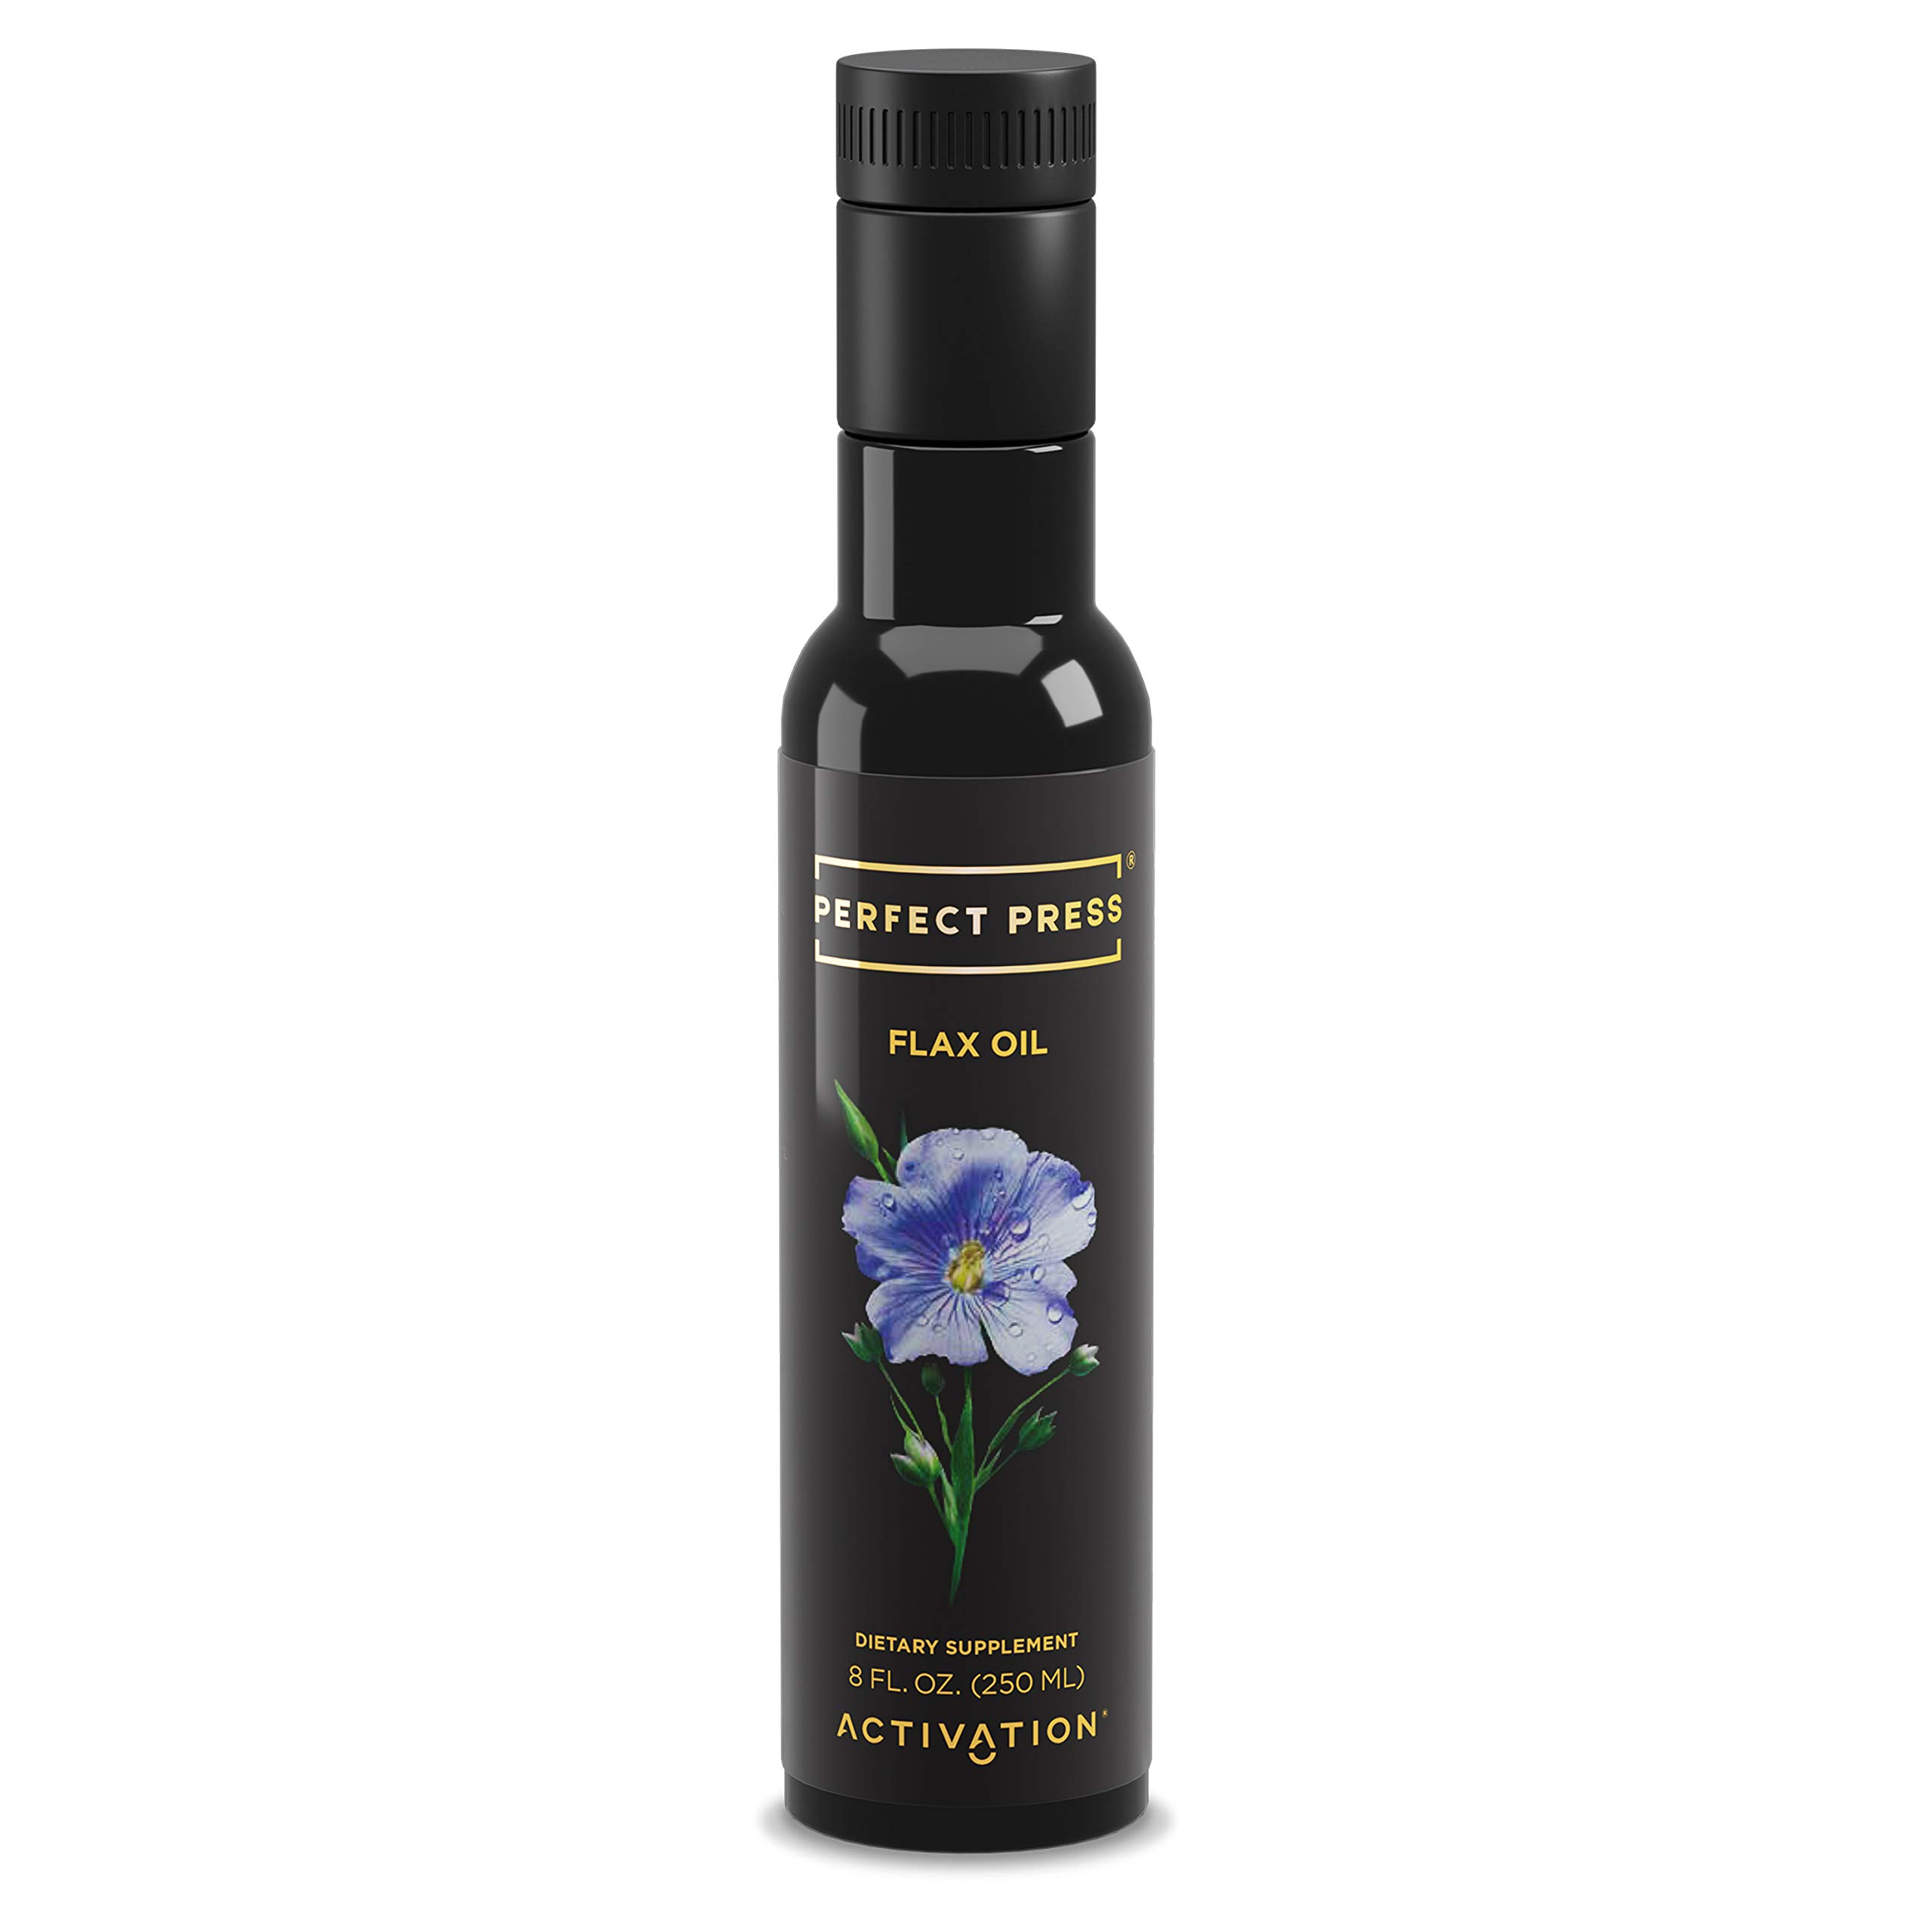 Activation Products, Perfect Press Flax Seed Oil - Great Tasting Cold Pressed Flaxseed Oil Supplement with Essential Omega 3 - 100% Vegan, Organic Flax Oil for Hair, Skin, Nails & Joints, 250ml by ACTIVATION